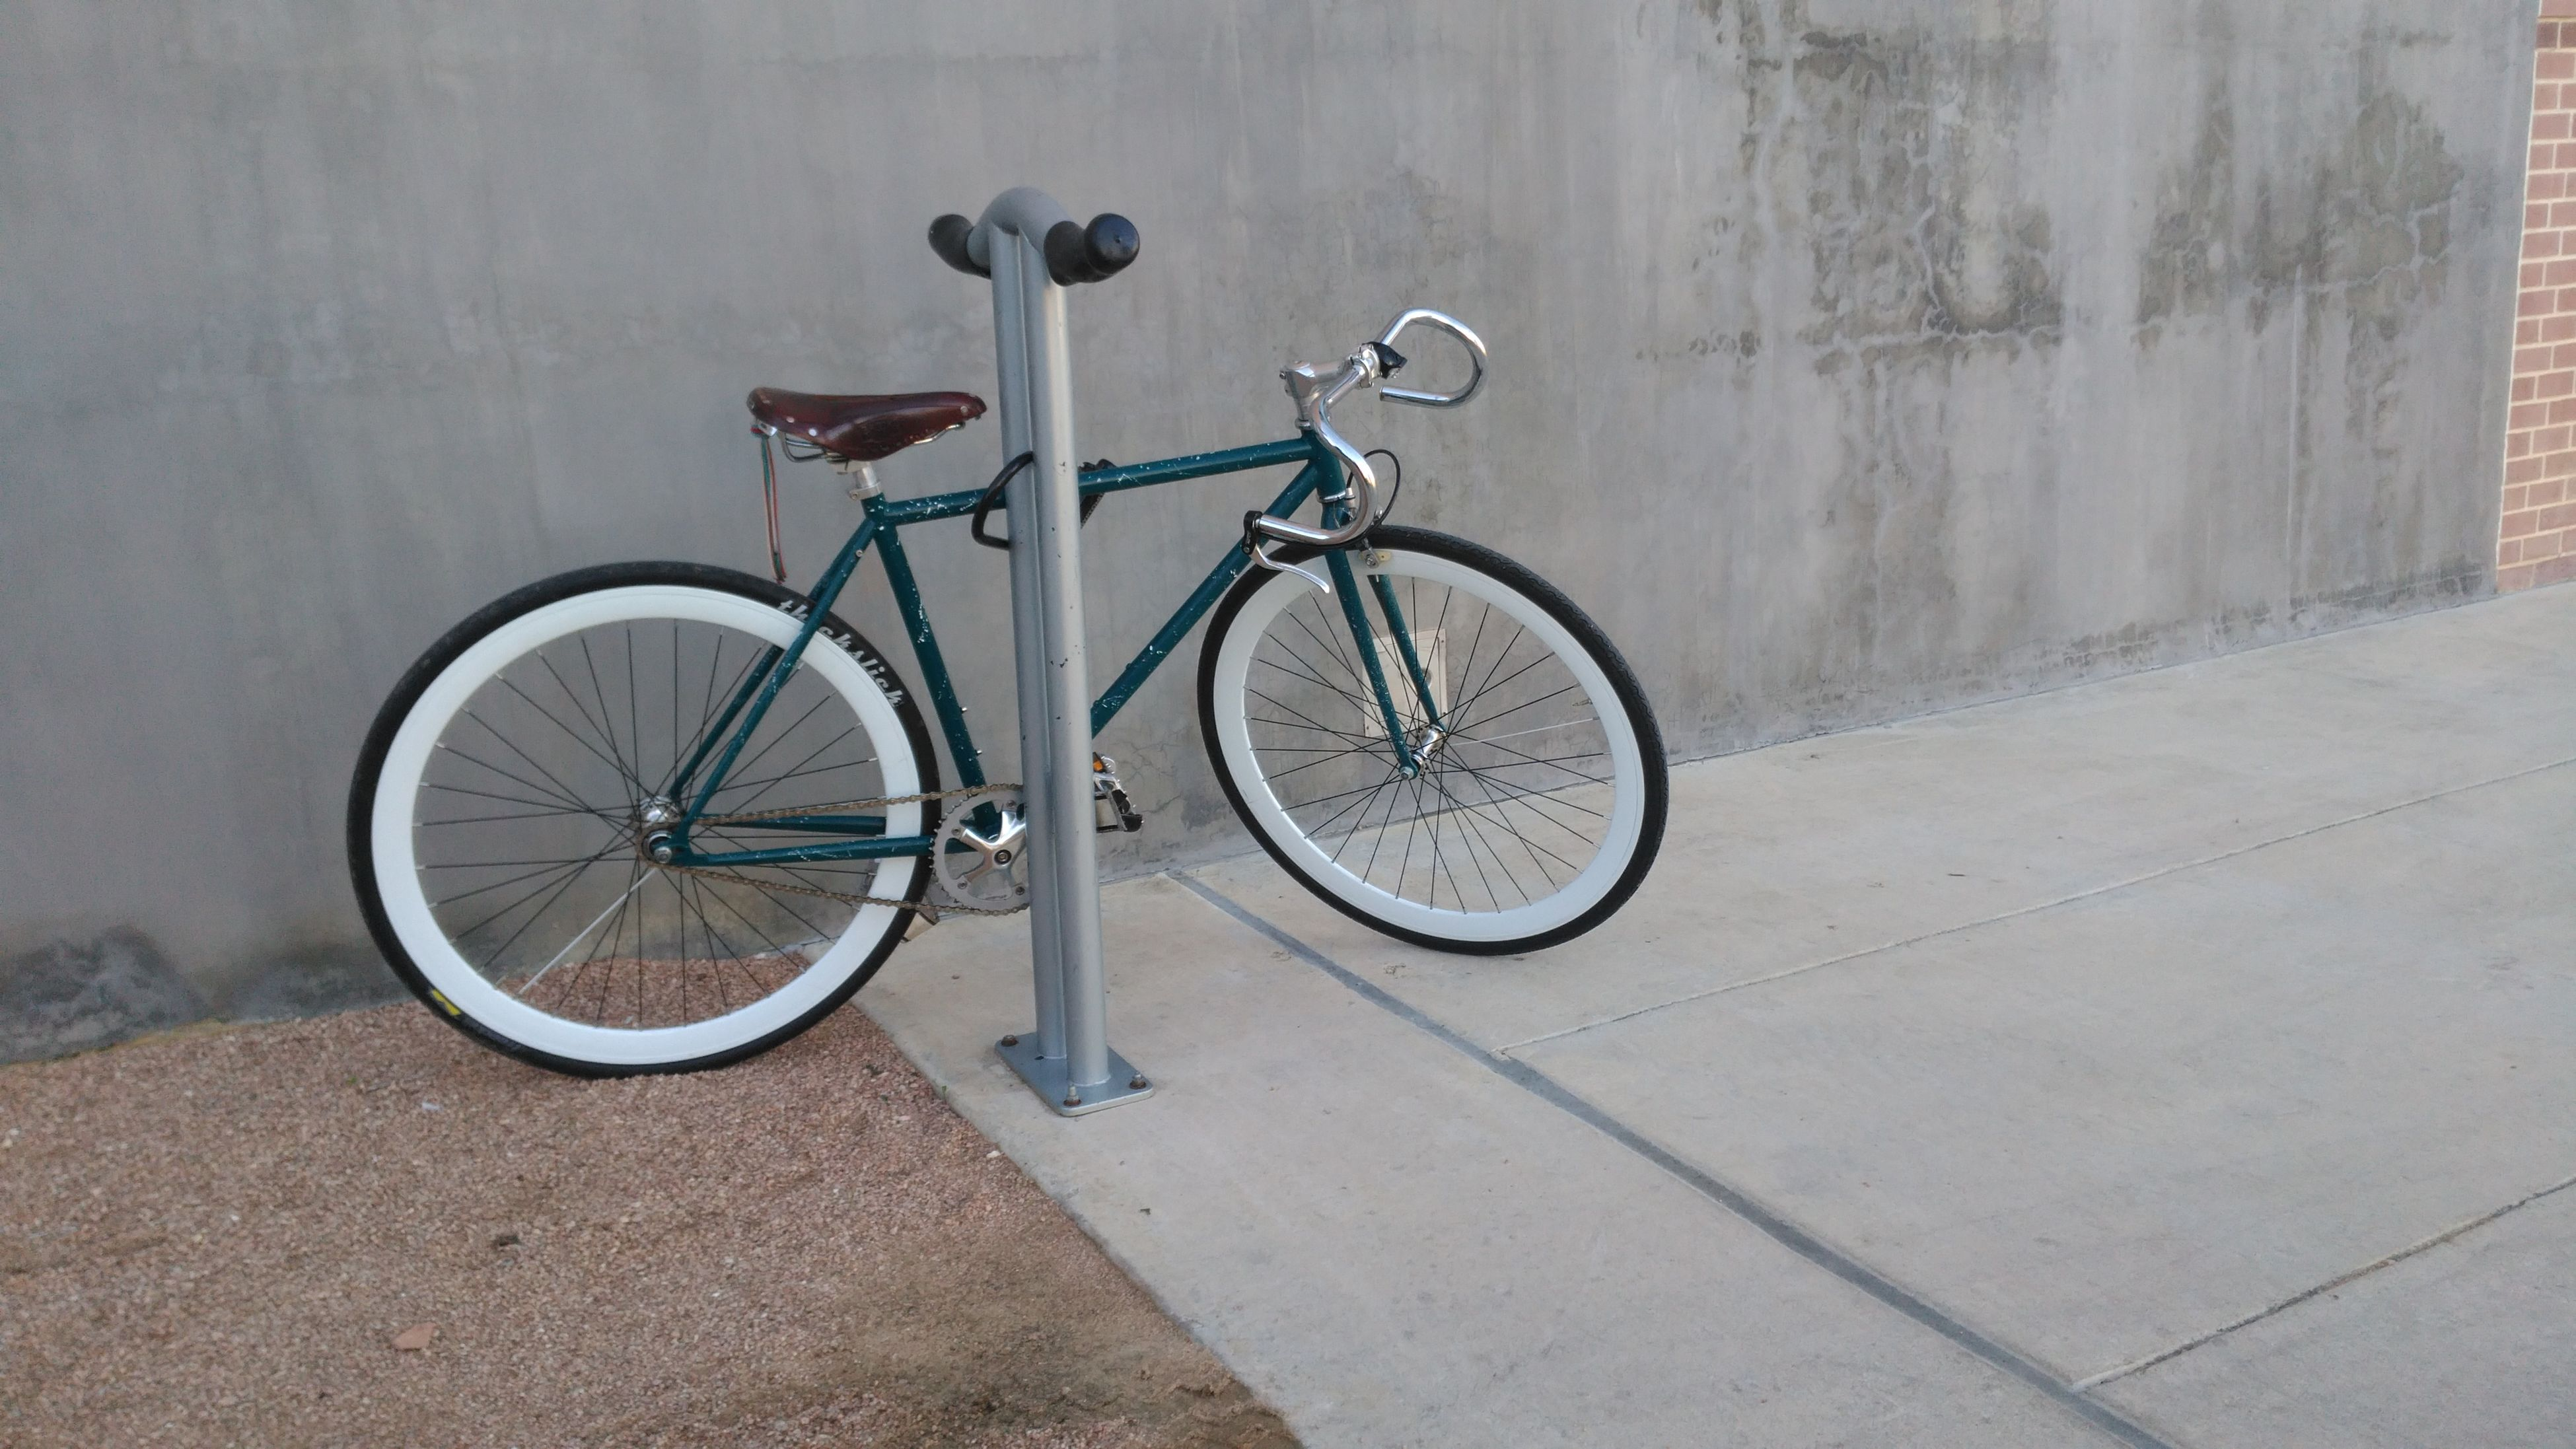 bicycle, transportation, land vehicle, mode of transport, stationary, parked, parking, wall - building feature, street, built structure, sidewalk, wall, architecture, wheel, day, cycle, no people, outdoors, road, building exterior